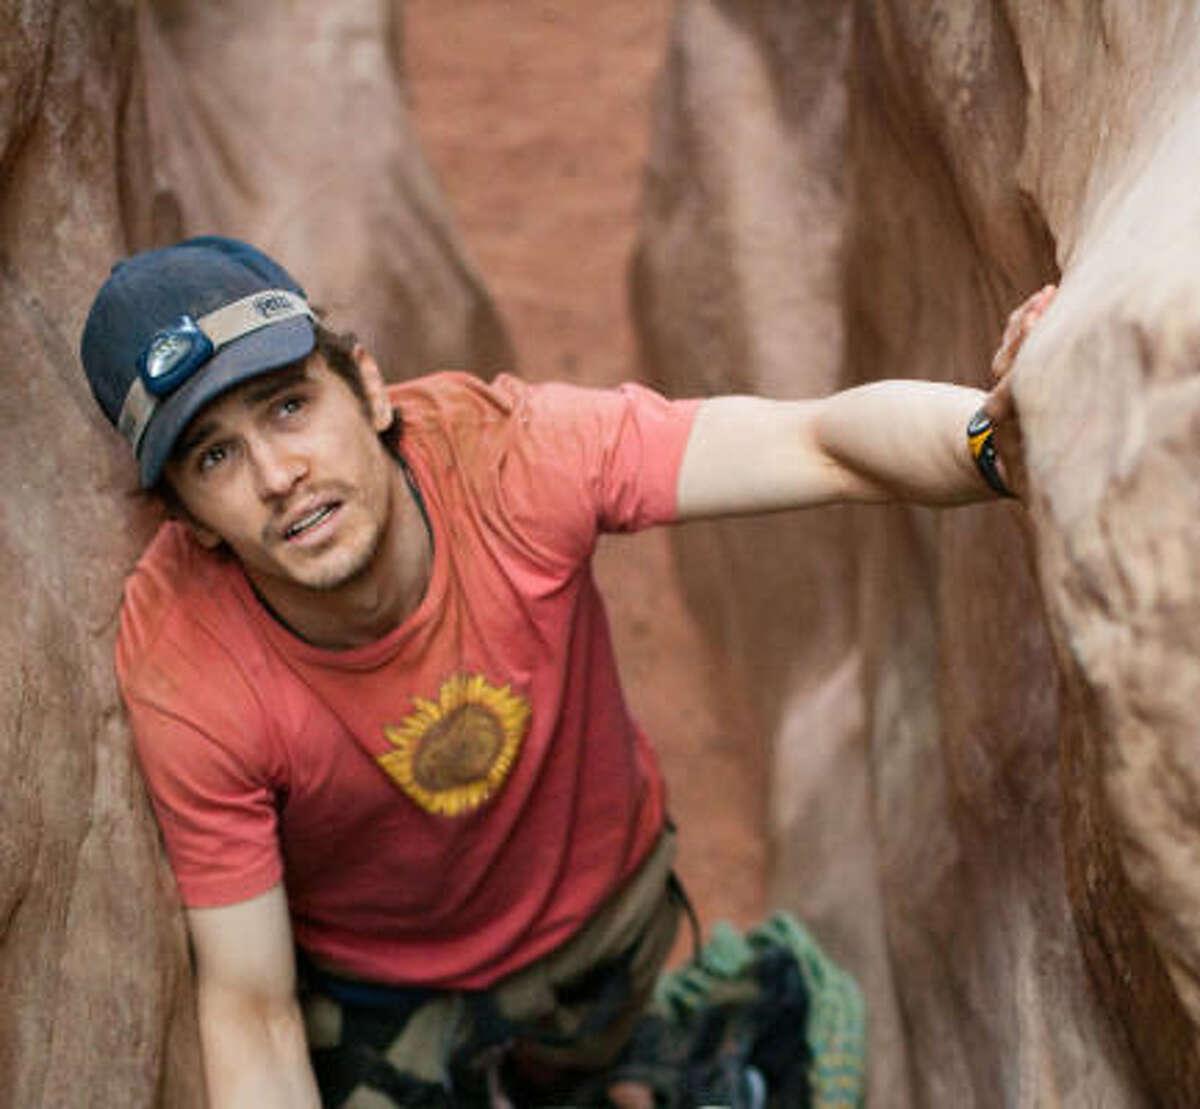 In this film publicity image released by Fox Searchlight Pictures, James Franco is shown in a scene from